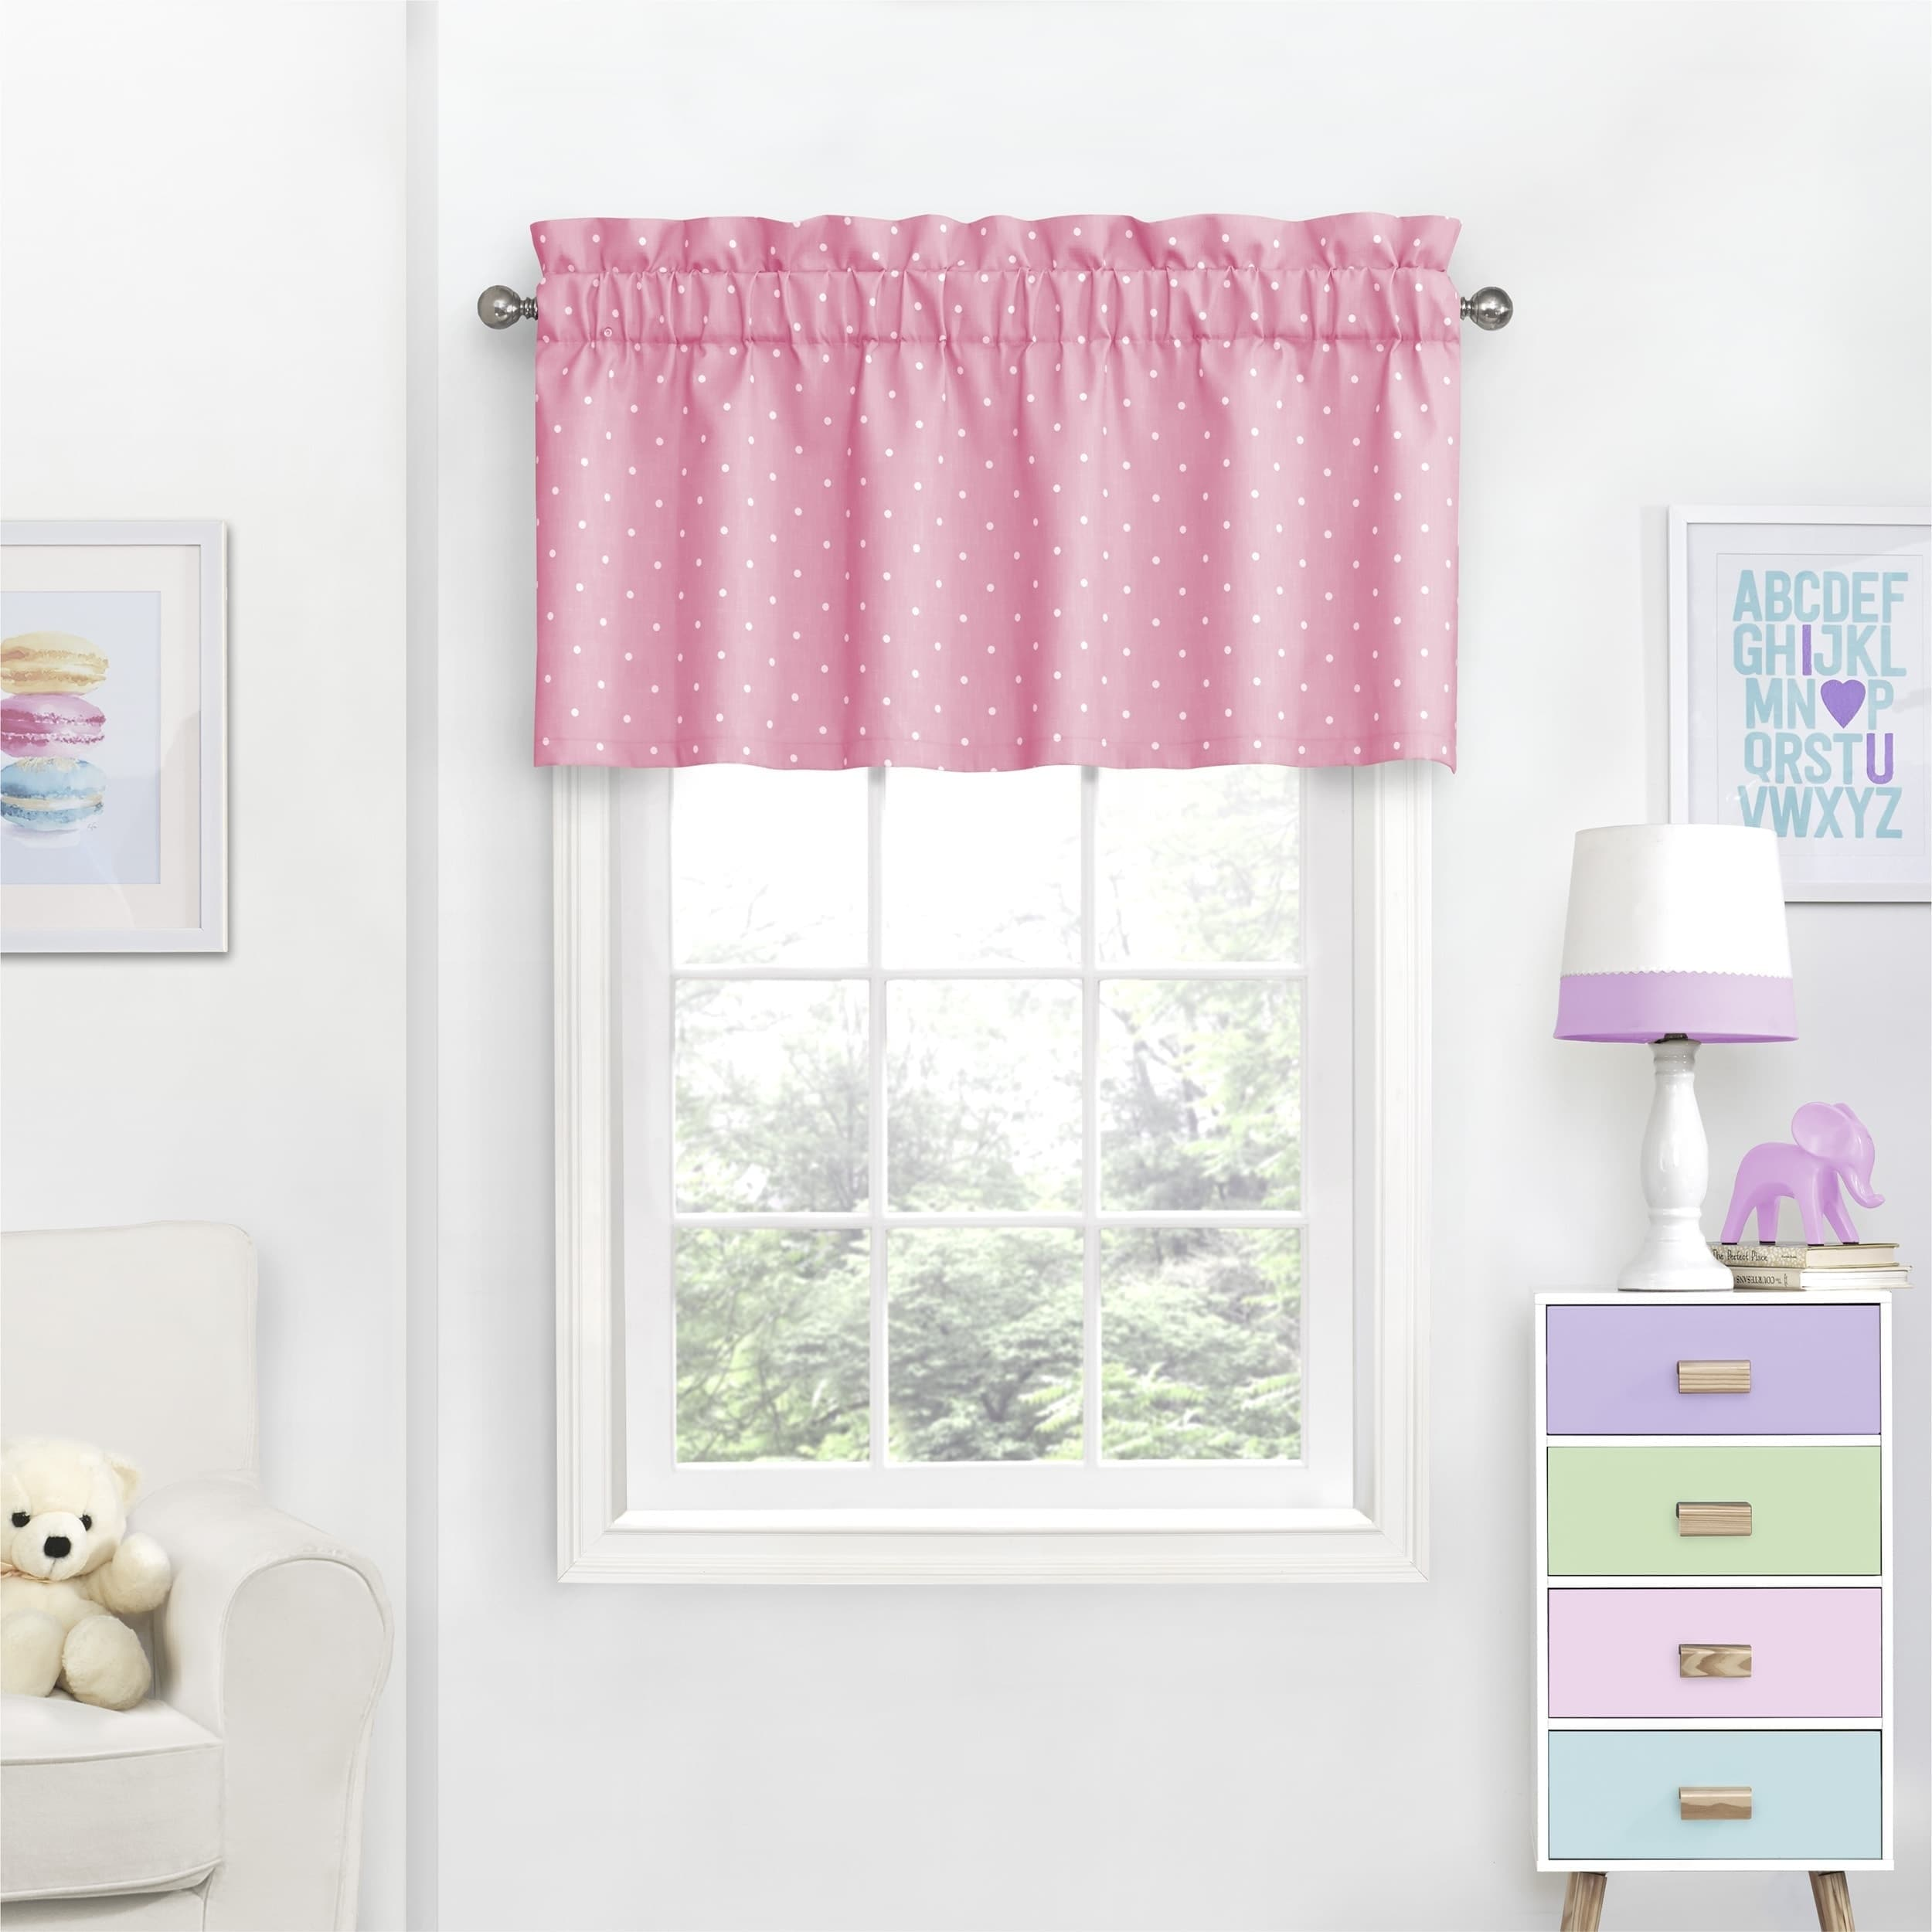 design decorating beautiful ideas nursery editeestrela curtains valance